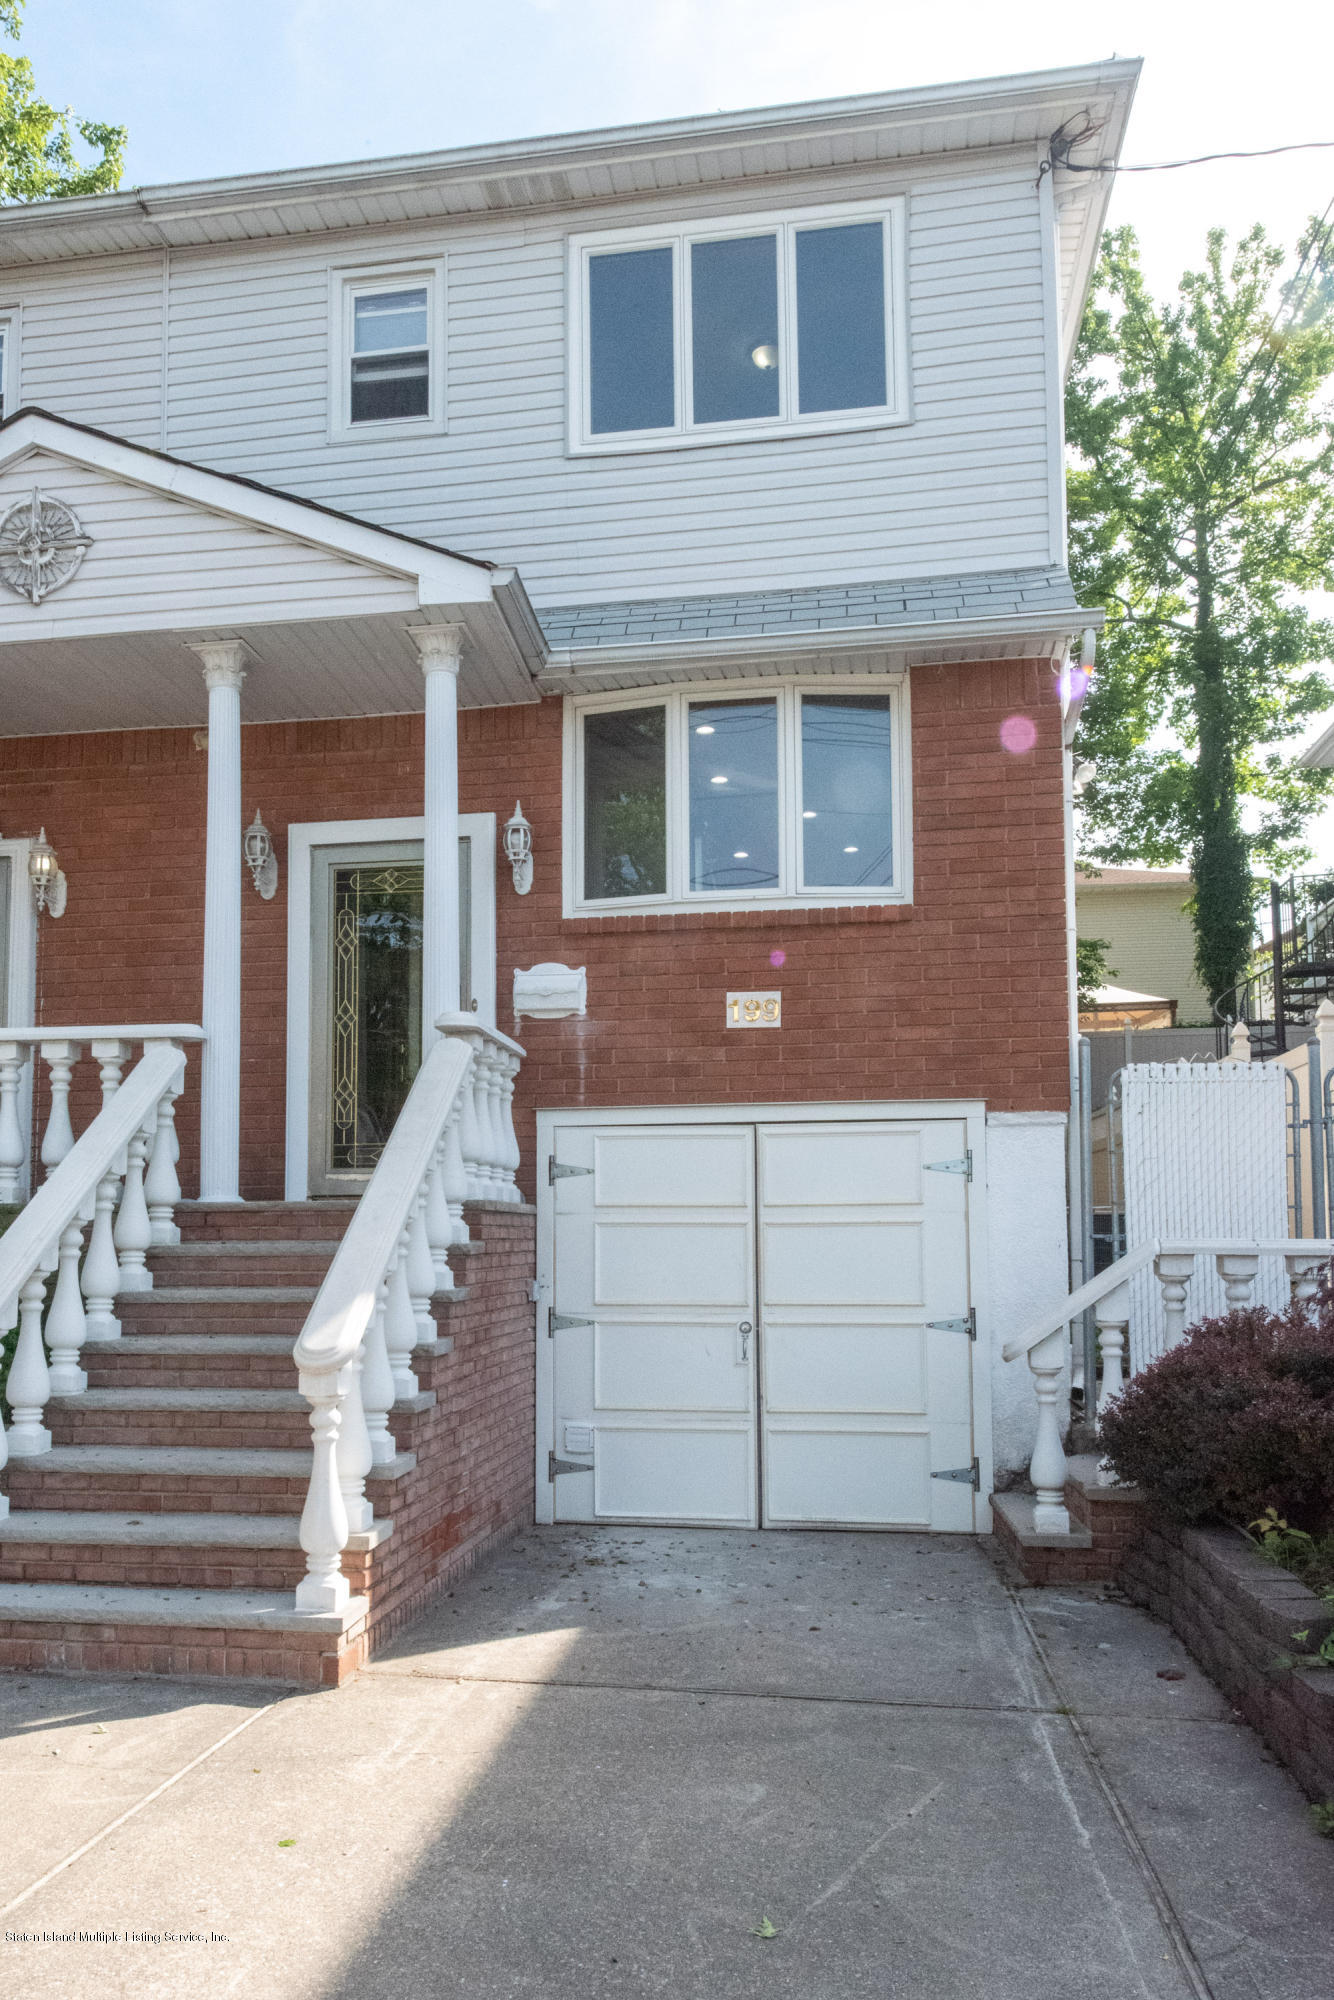 Single Family - Semi-Attached 199 Bay Terrace  Staten Island, NY 10308, MLS-1129755-2